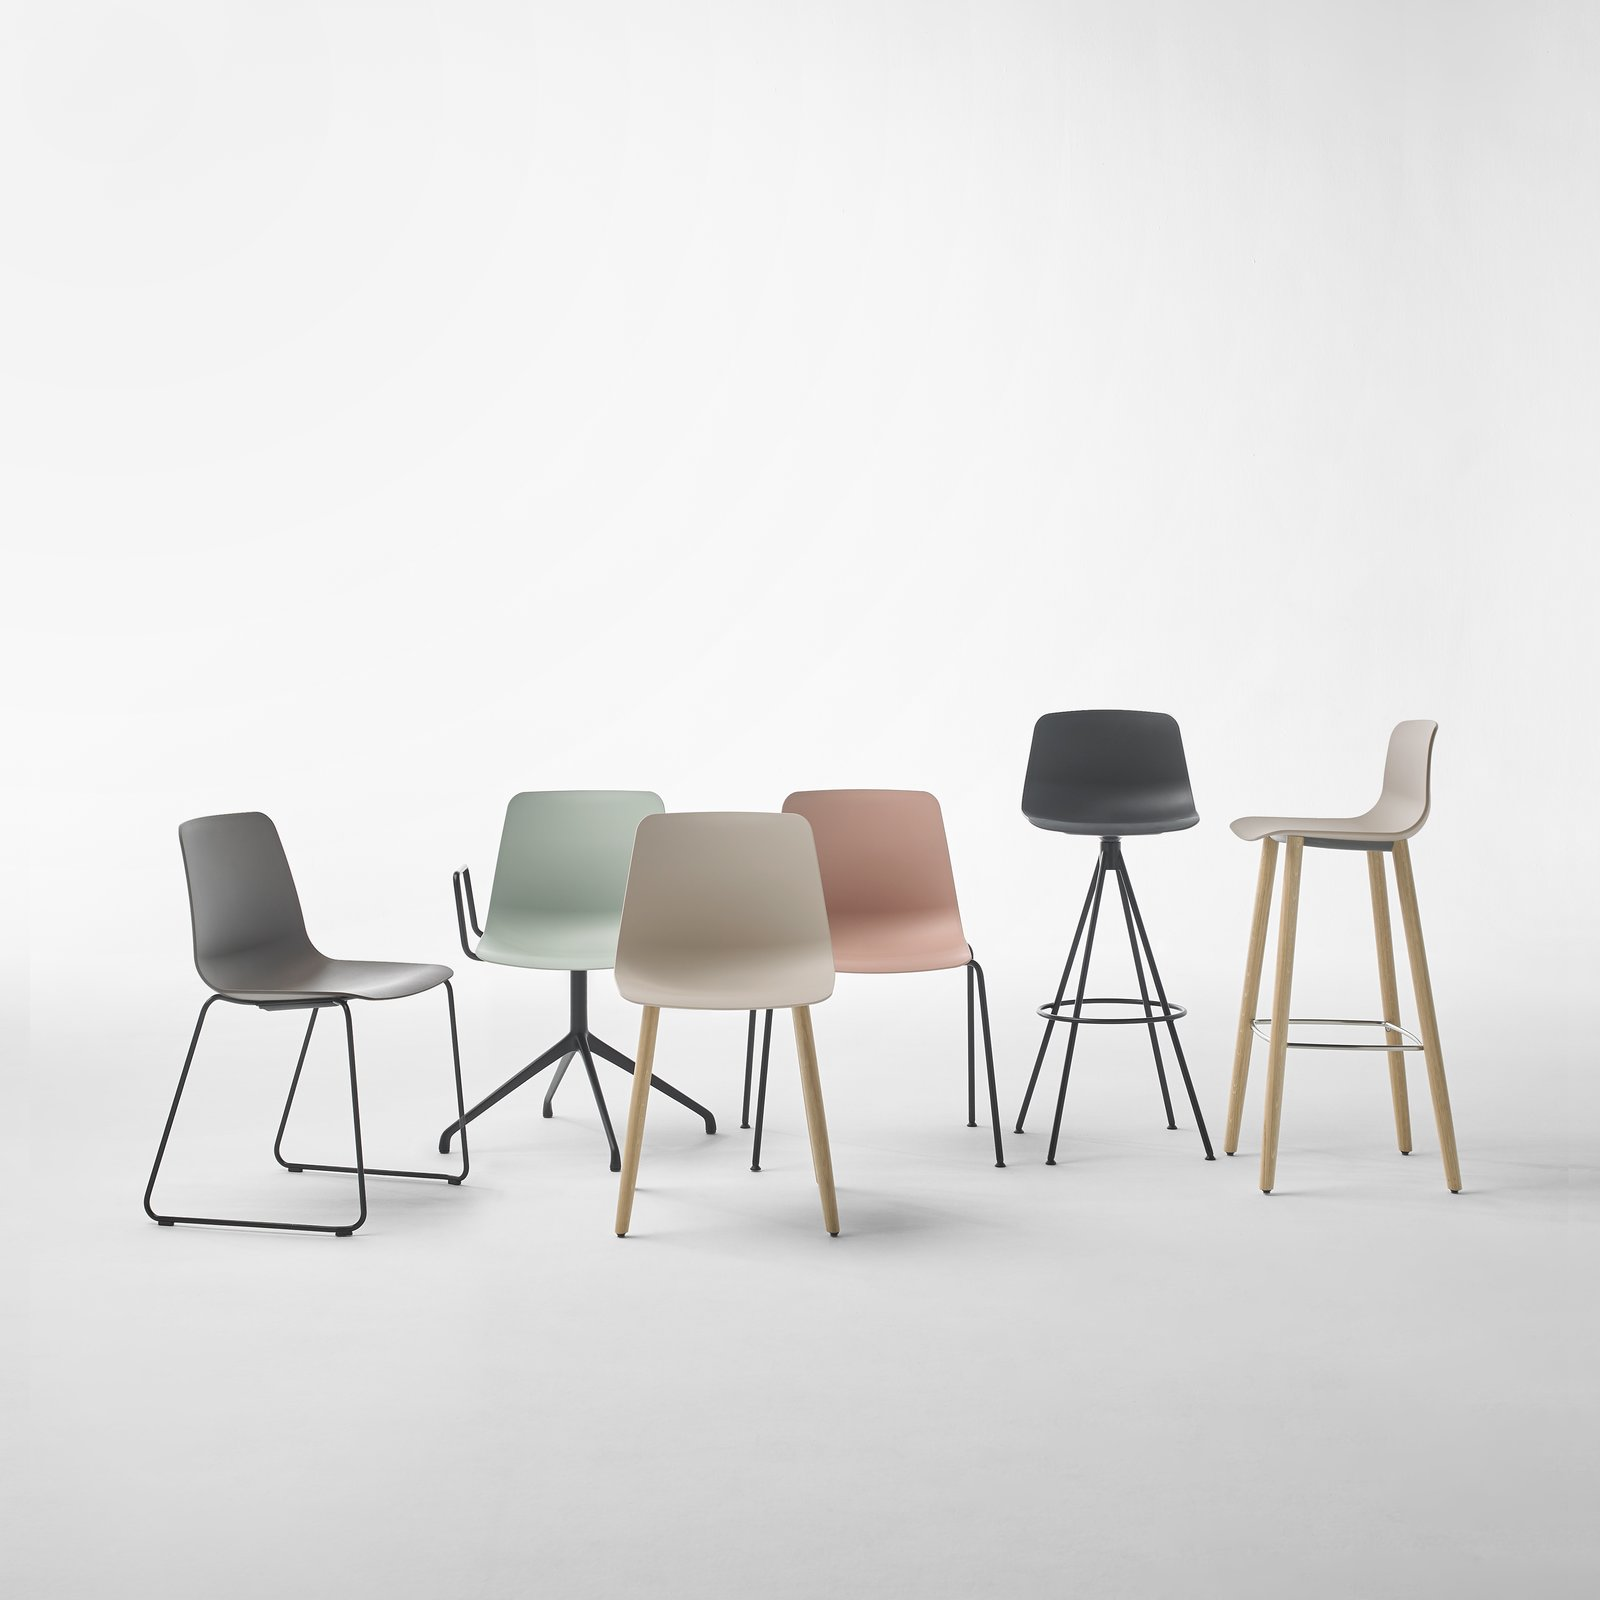 Photo 10 of 16 in Trend Watch: Study Up on the Best Design from imm Cologne 2018